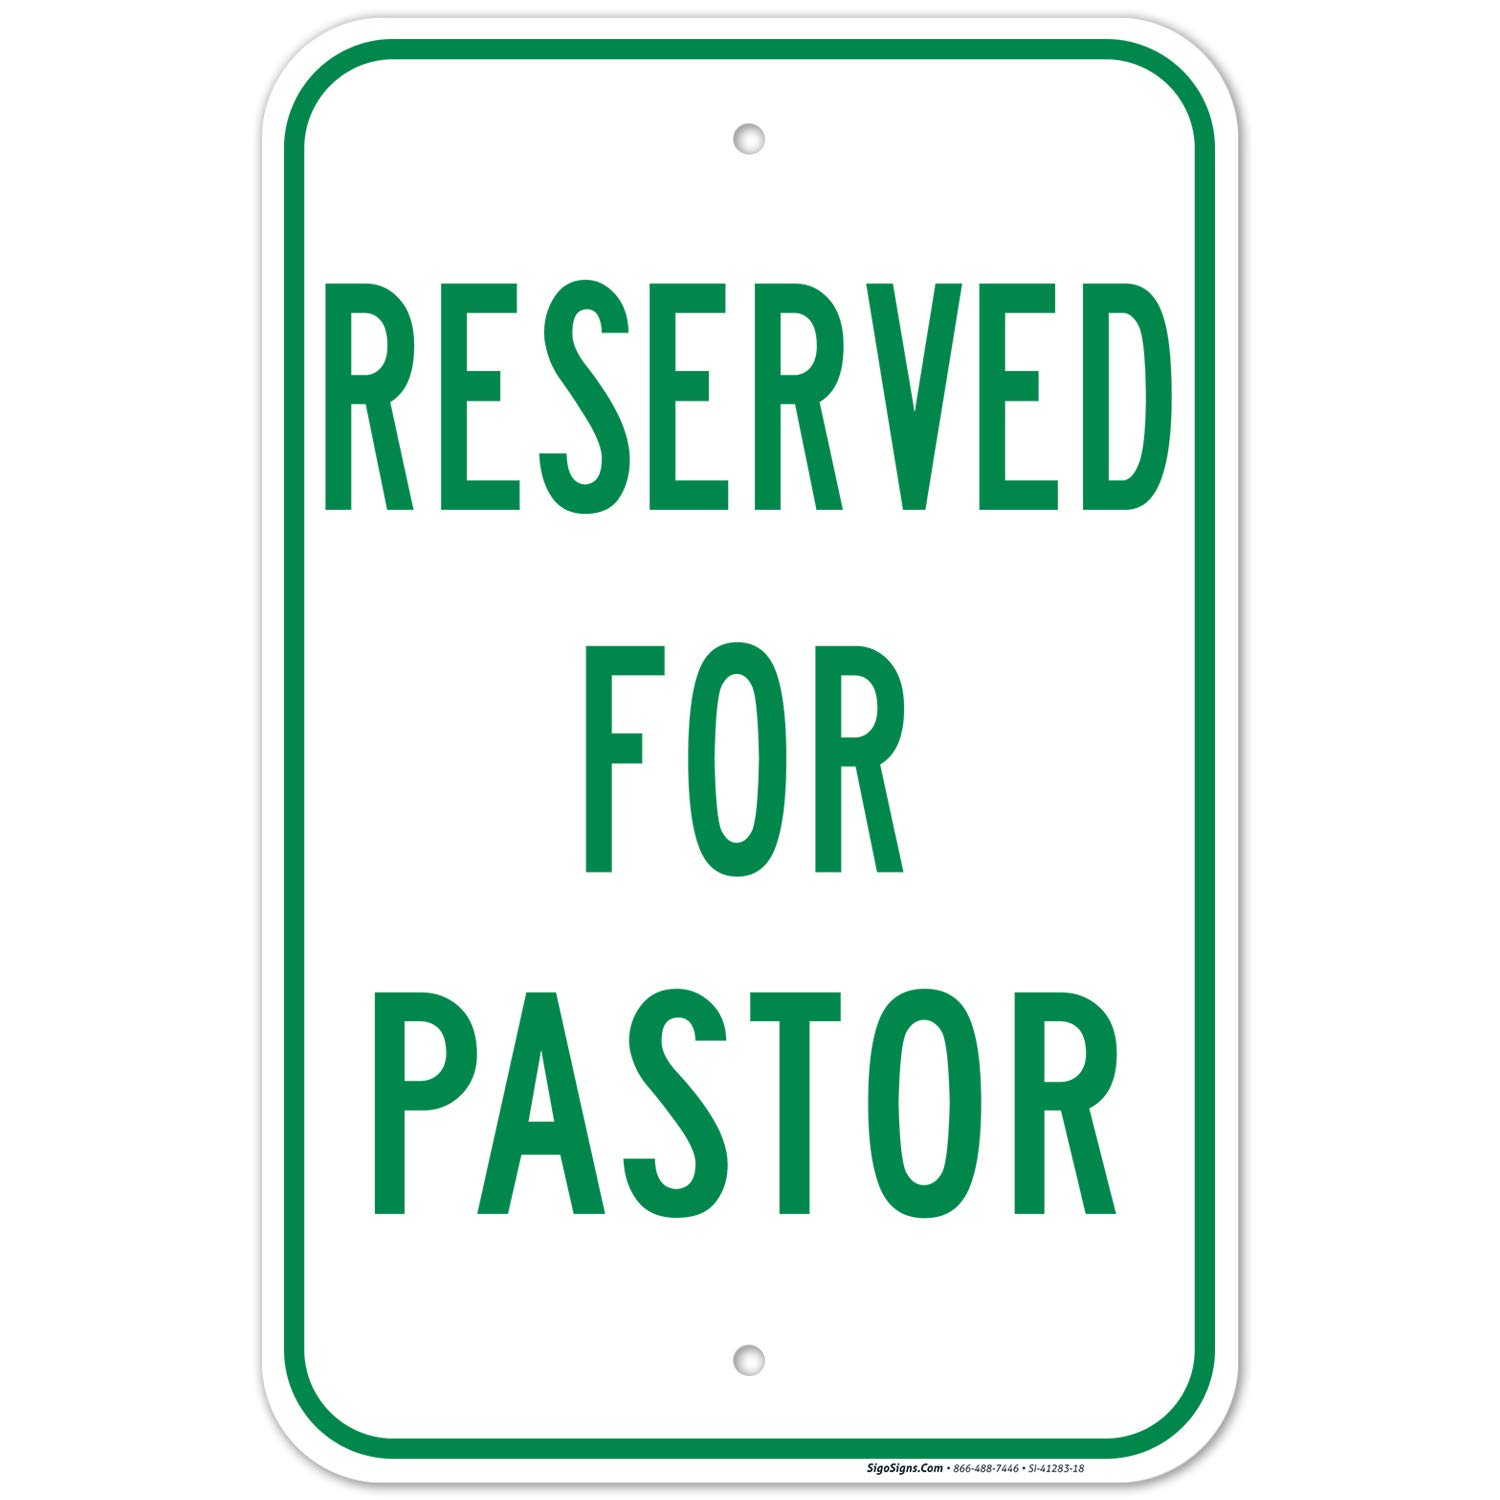 Reserved for Pastor Green Sign 12x18 Max New color 50% OFF Rust Inches Free .063 Alu